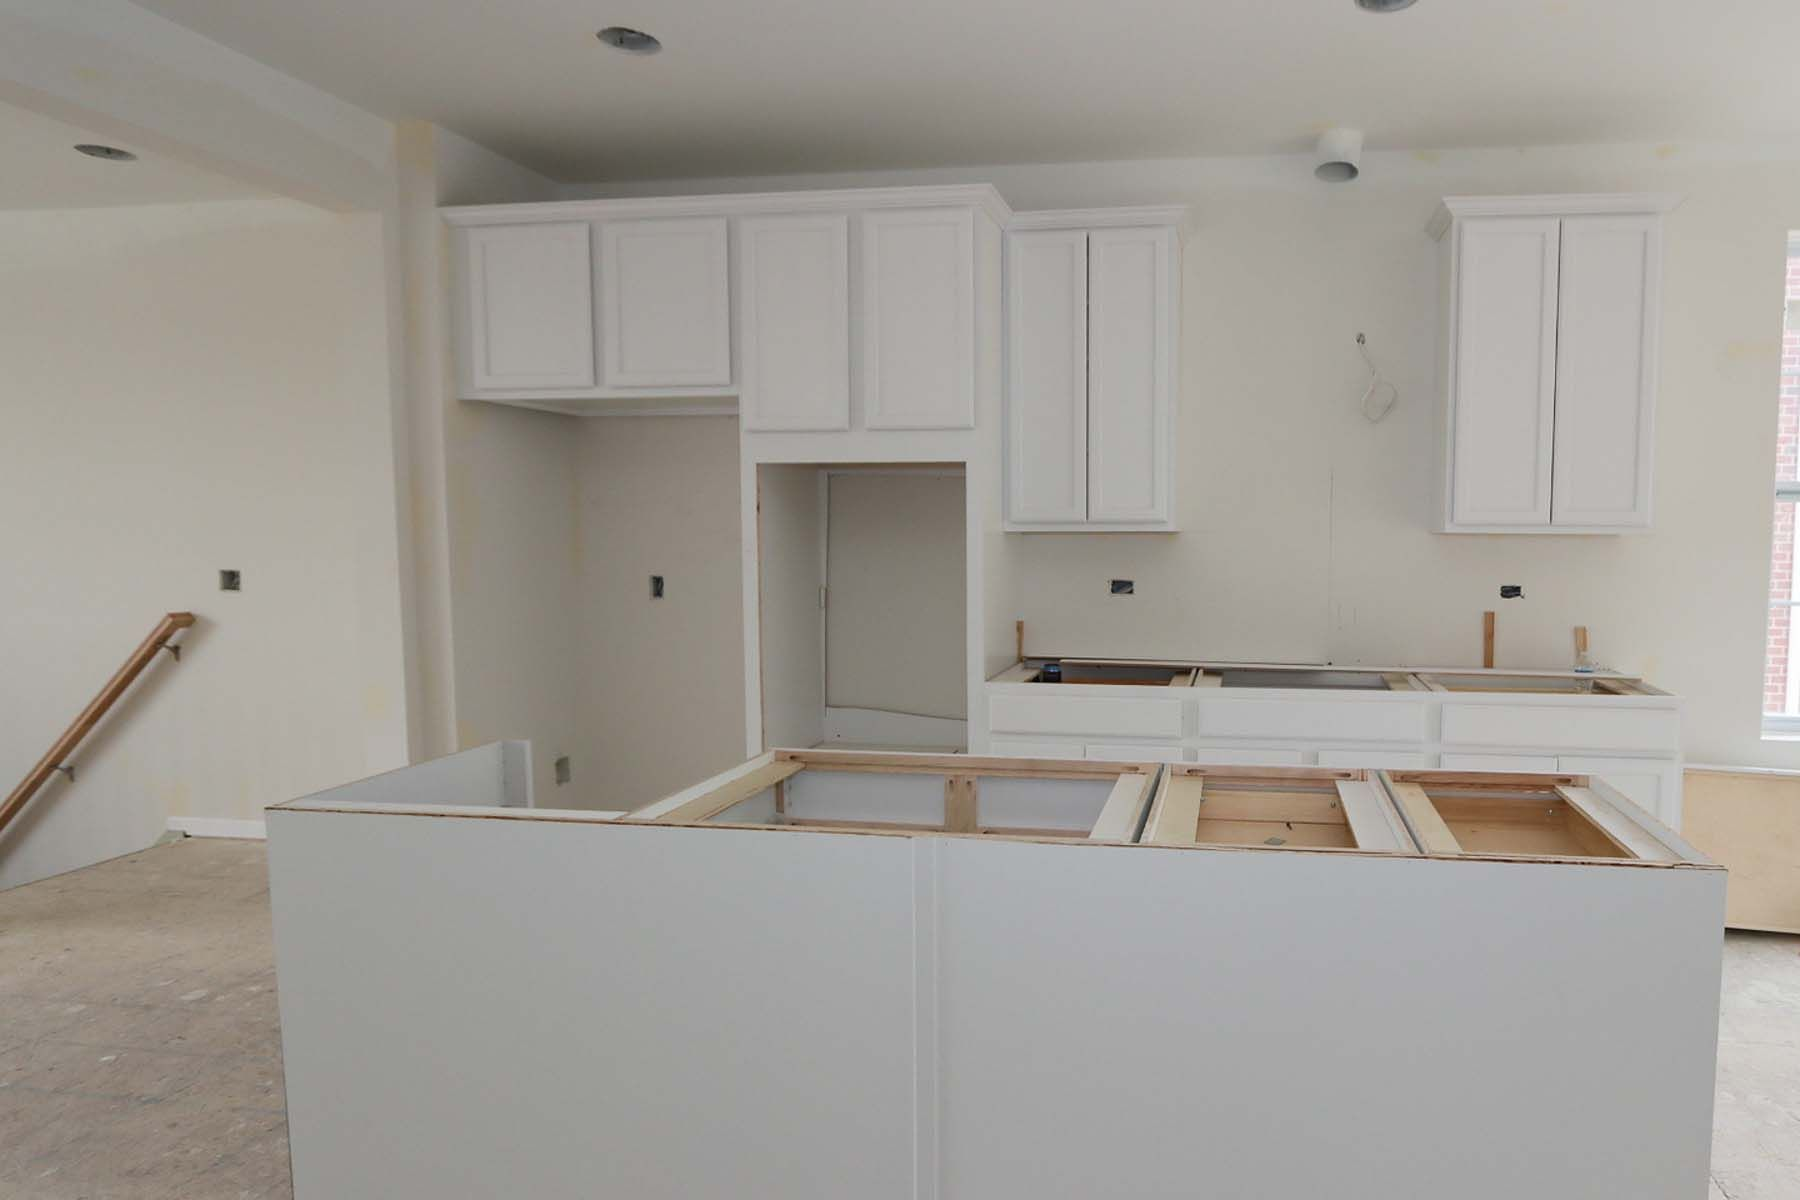 Kitchen featured in the Maplewood By M/I Homes in Detroit, MI